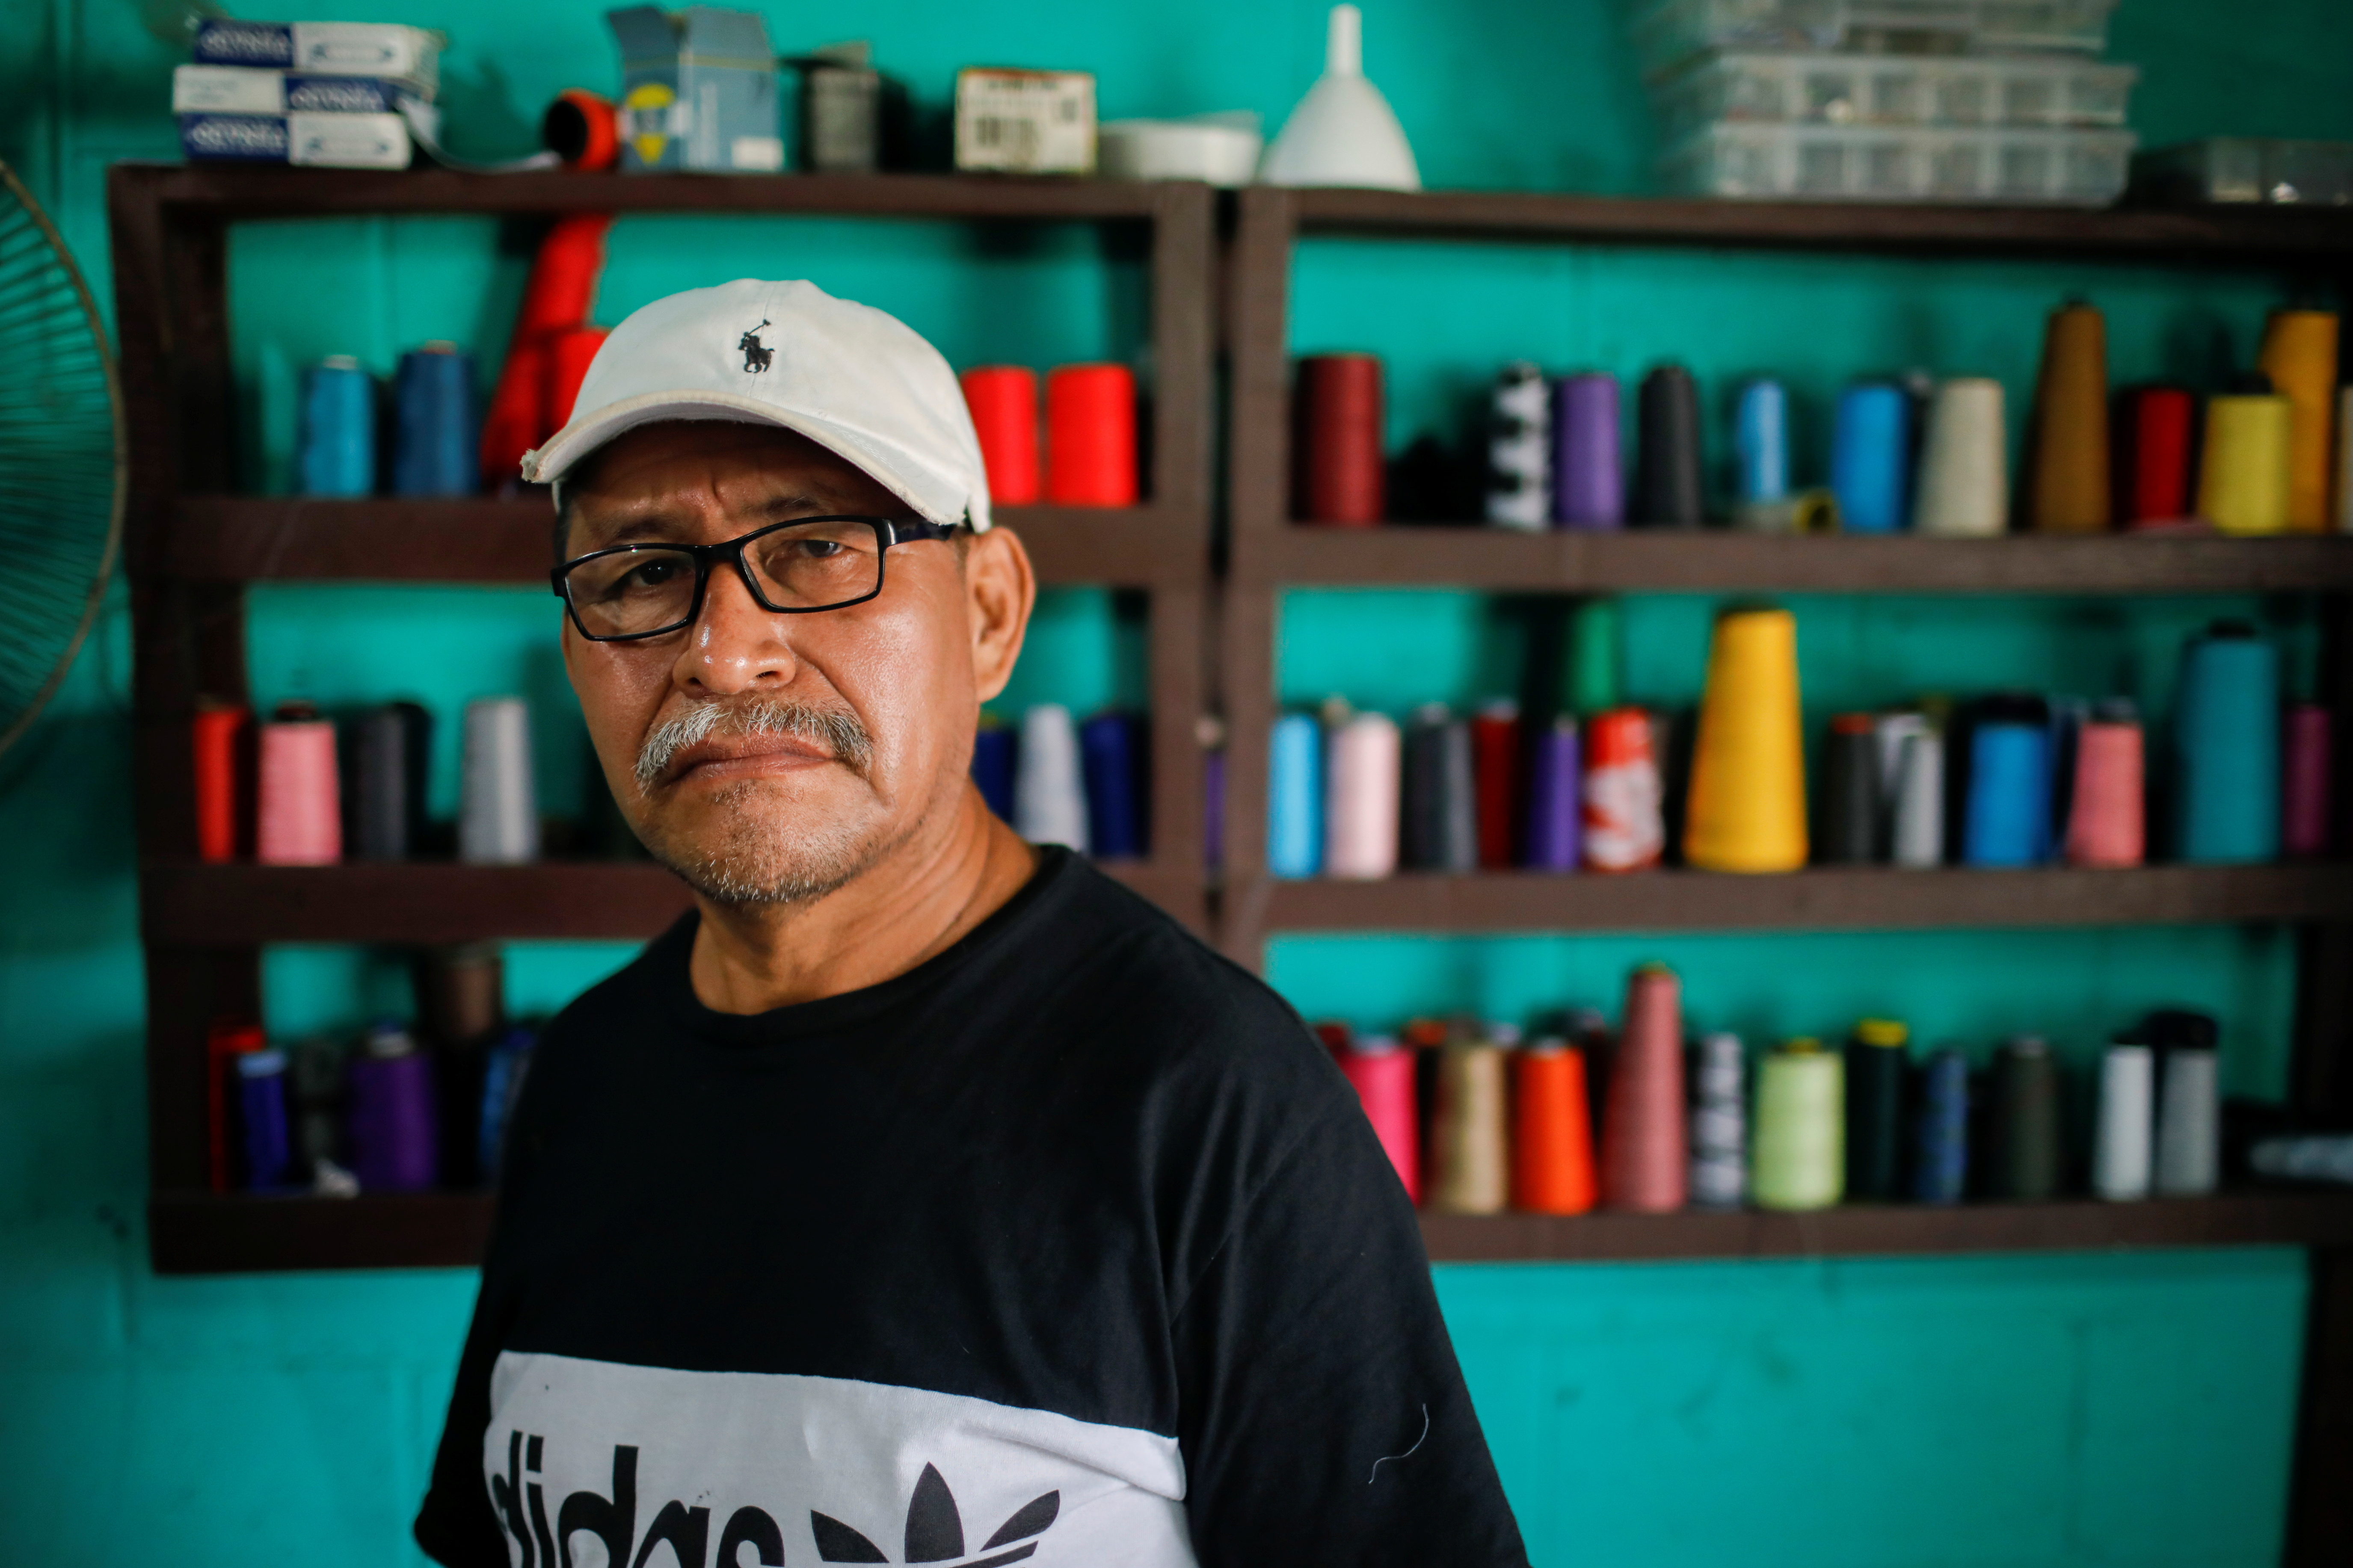 Jaime Ramirez, 60-year-old tailor who receives remittances from his daughters living in the U.S., talks with Reuters at his shop in Colon, El Salvador, September 3, 2021. REUTERS/Jose Cabezas